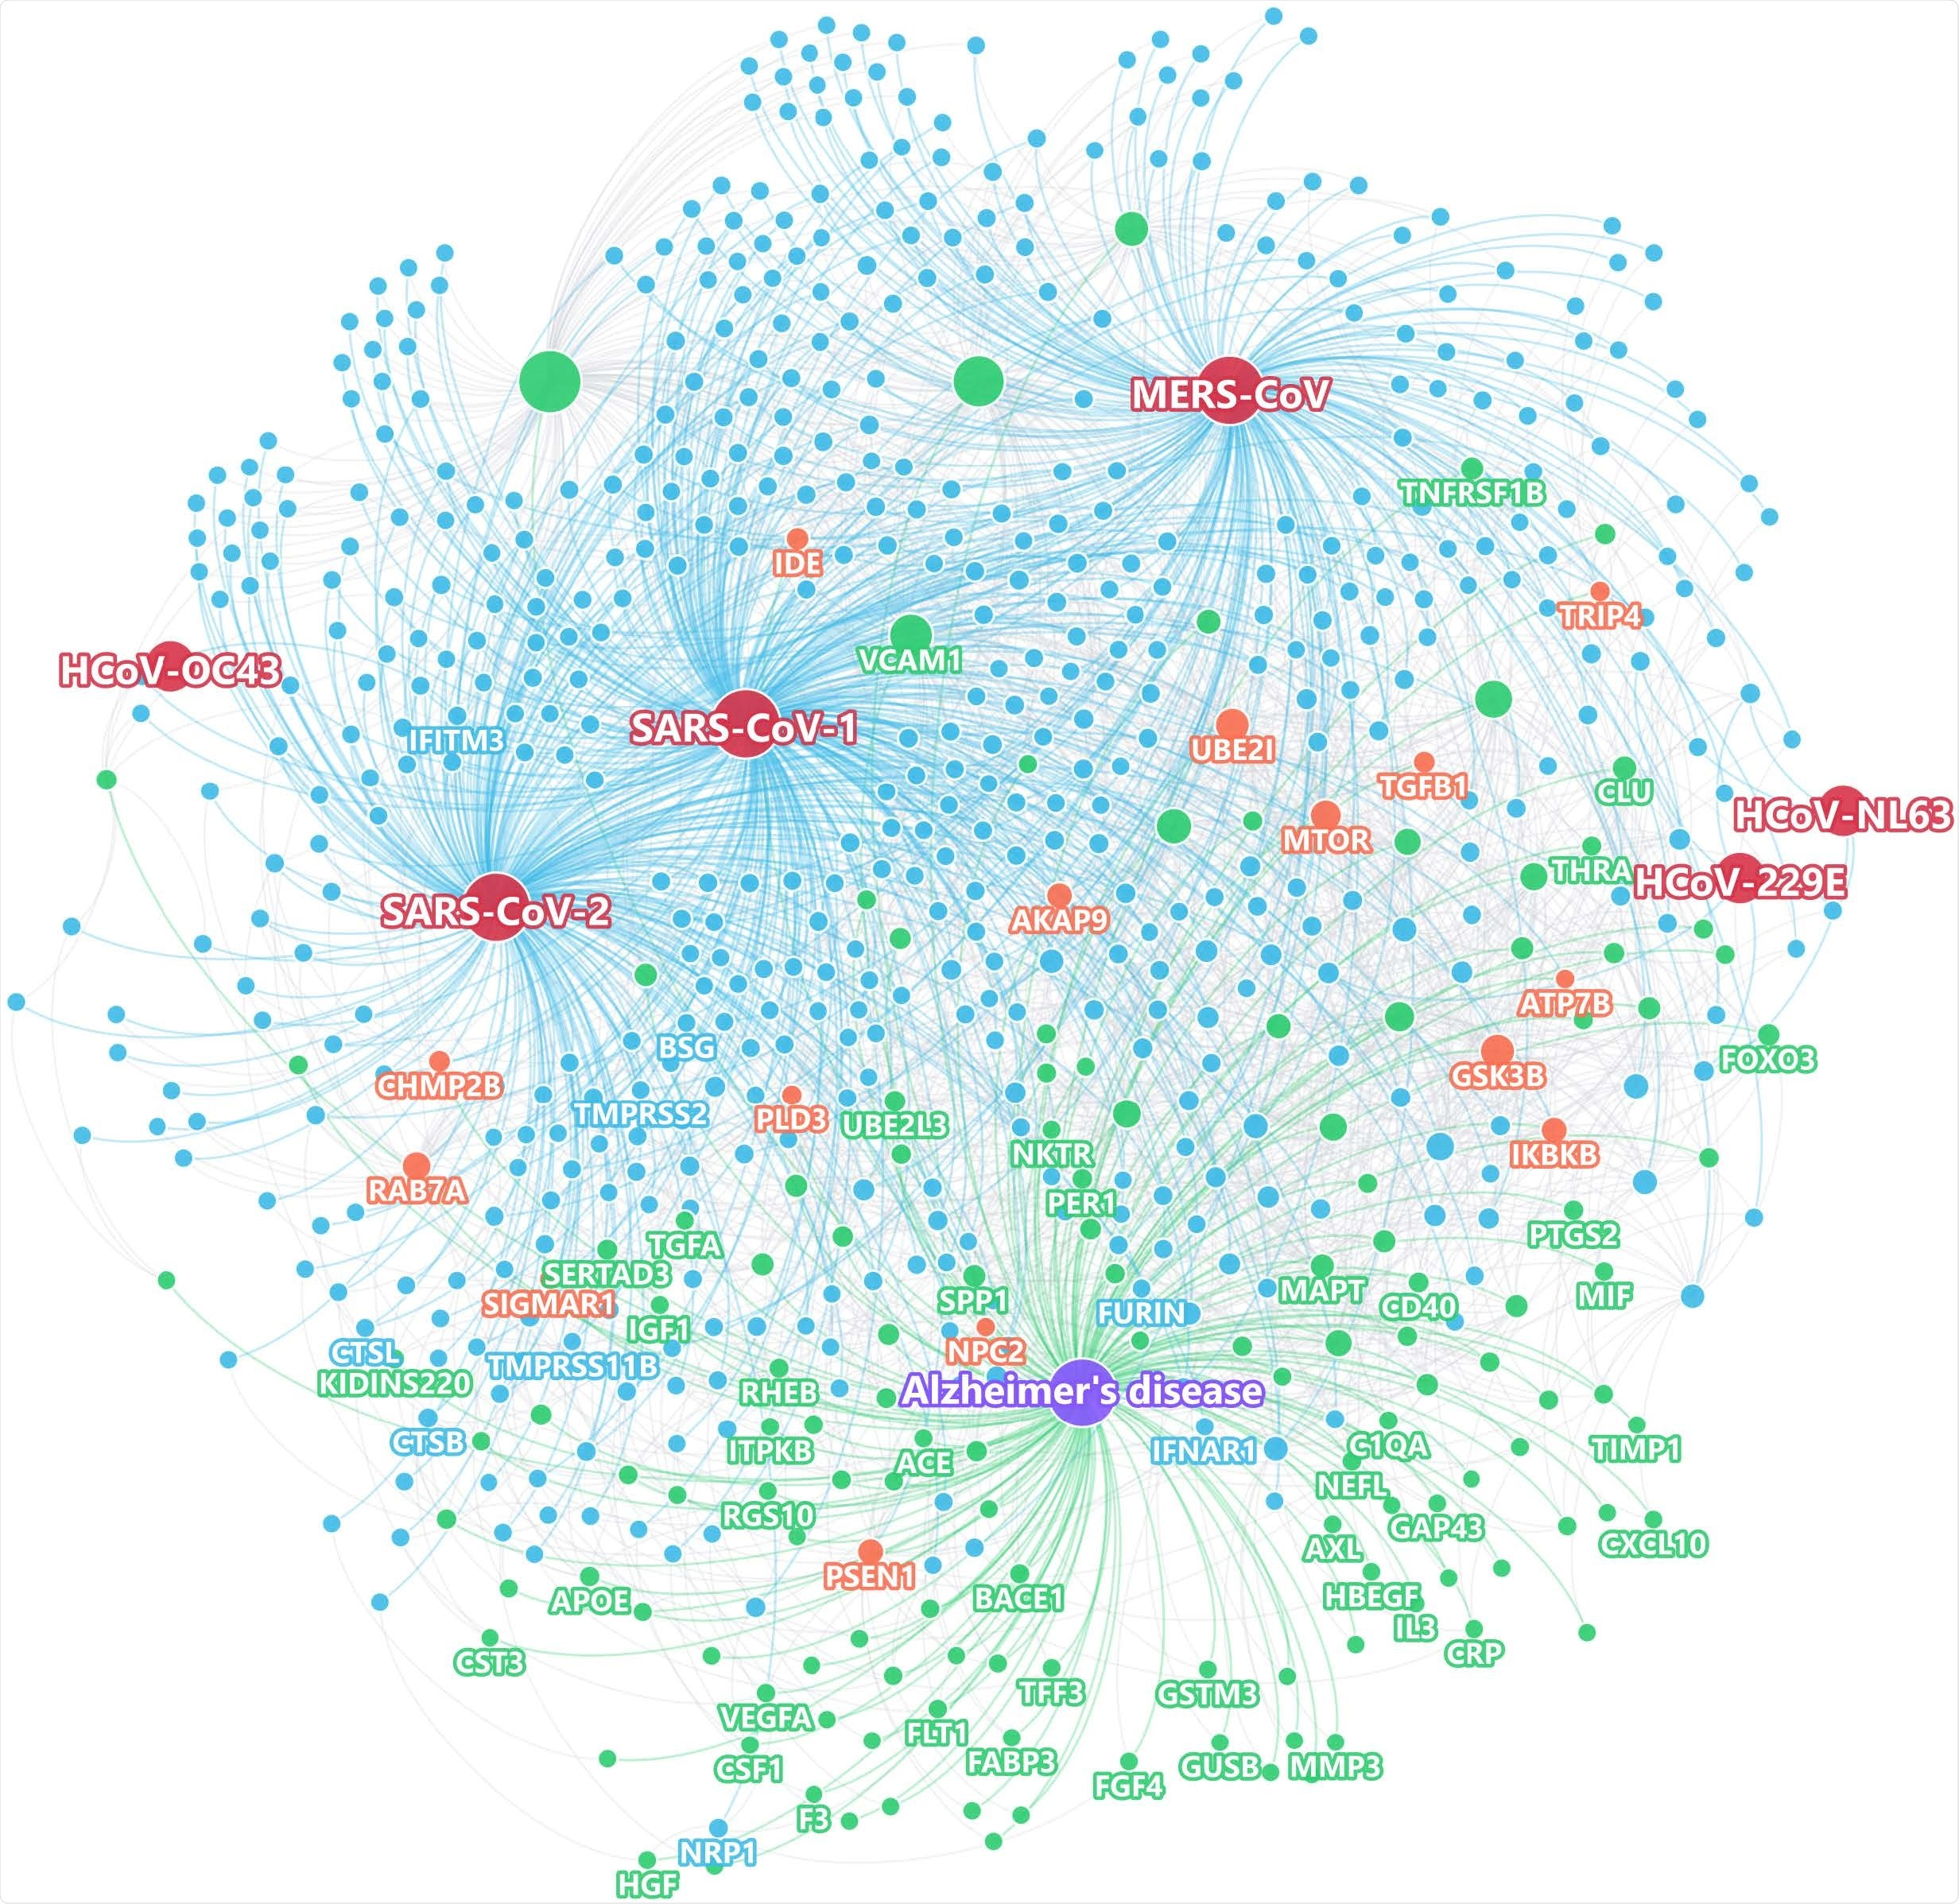 Using state-of-the-art network proximity measures to evaluate the network-based relationship for the gene/protein sets between virus-host factors and each disease/condition under the human interactome network model.